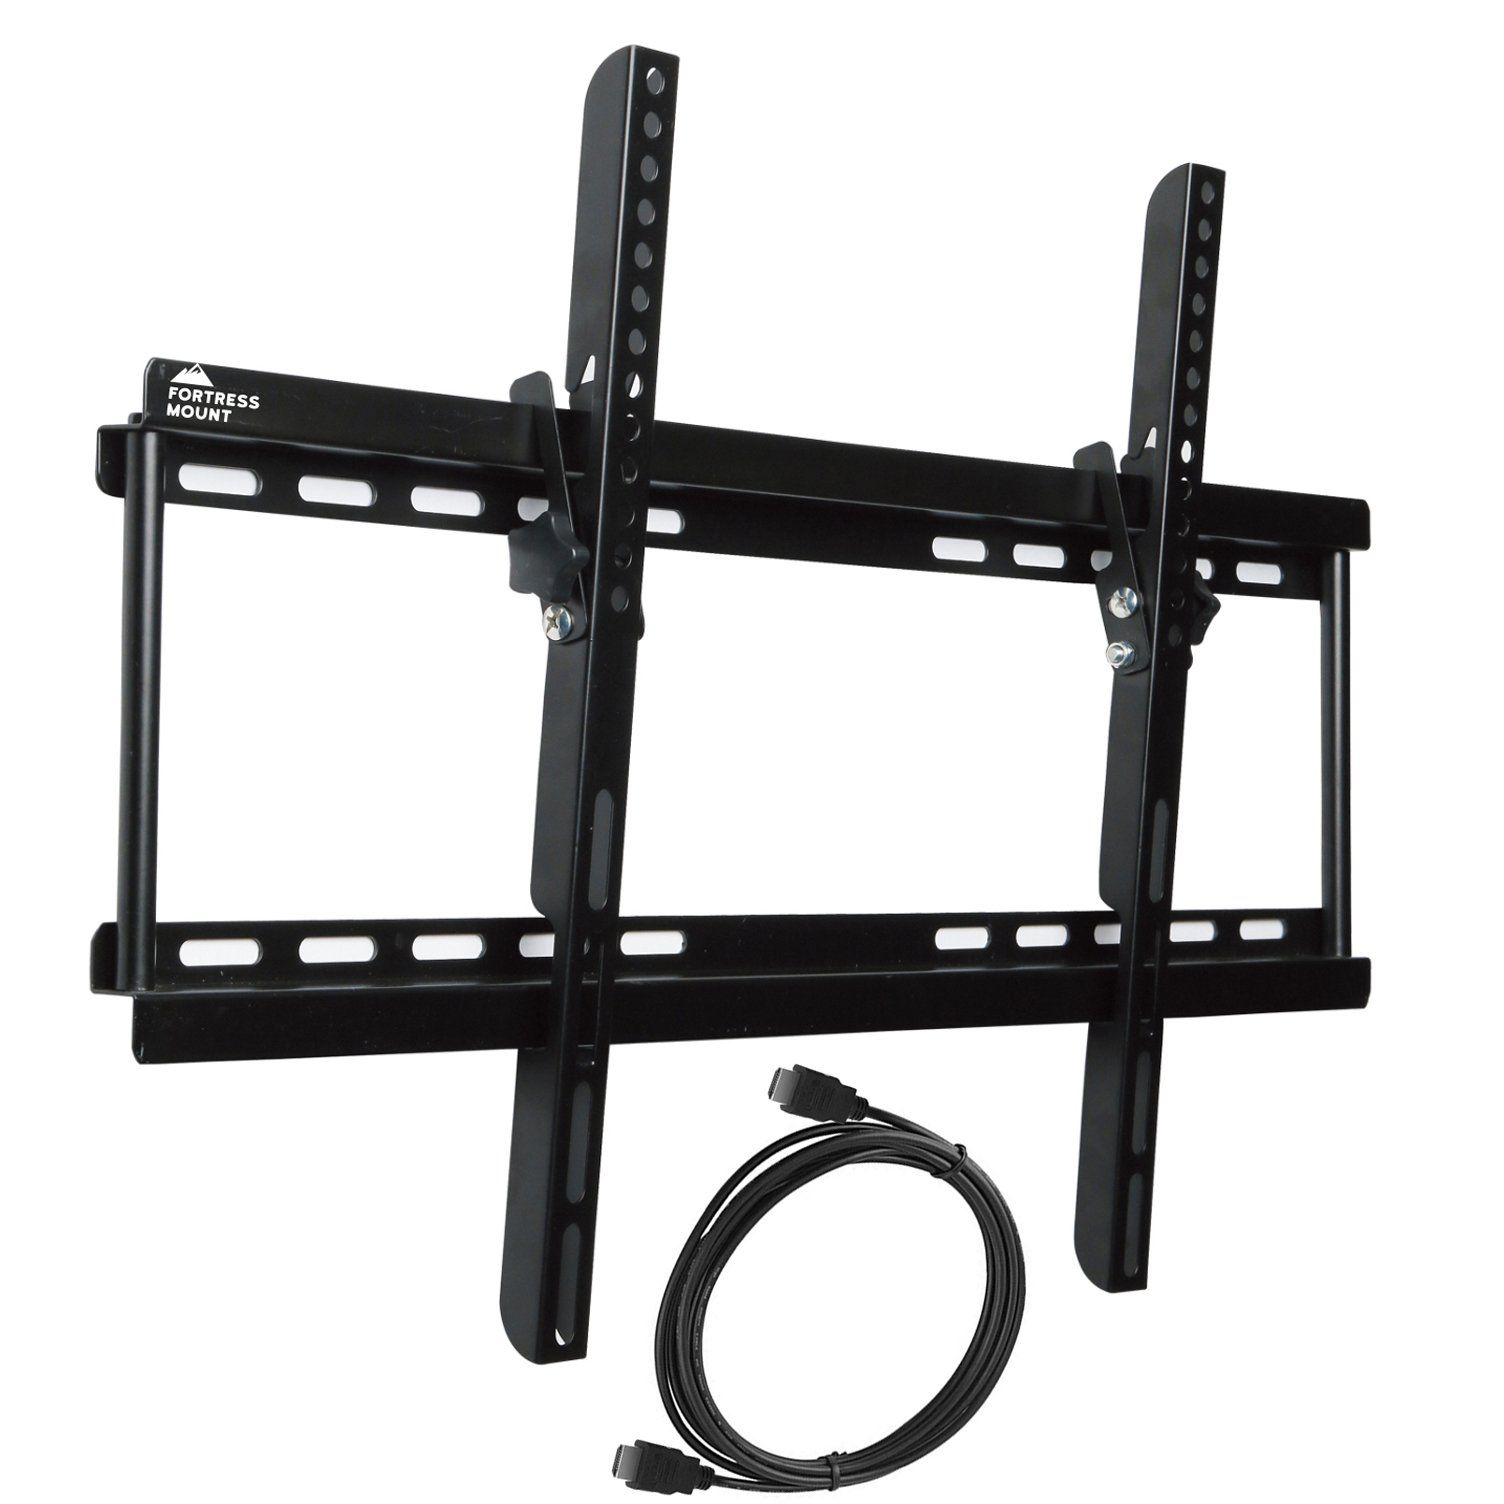 Great Mount For A Great Price Easy To Install As Long As You Can Find A Stud To Use Fits My 32 Toshiba Perfectly Bedroom Tv Wall Tv In Bedroom Home